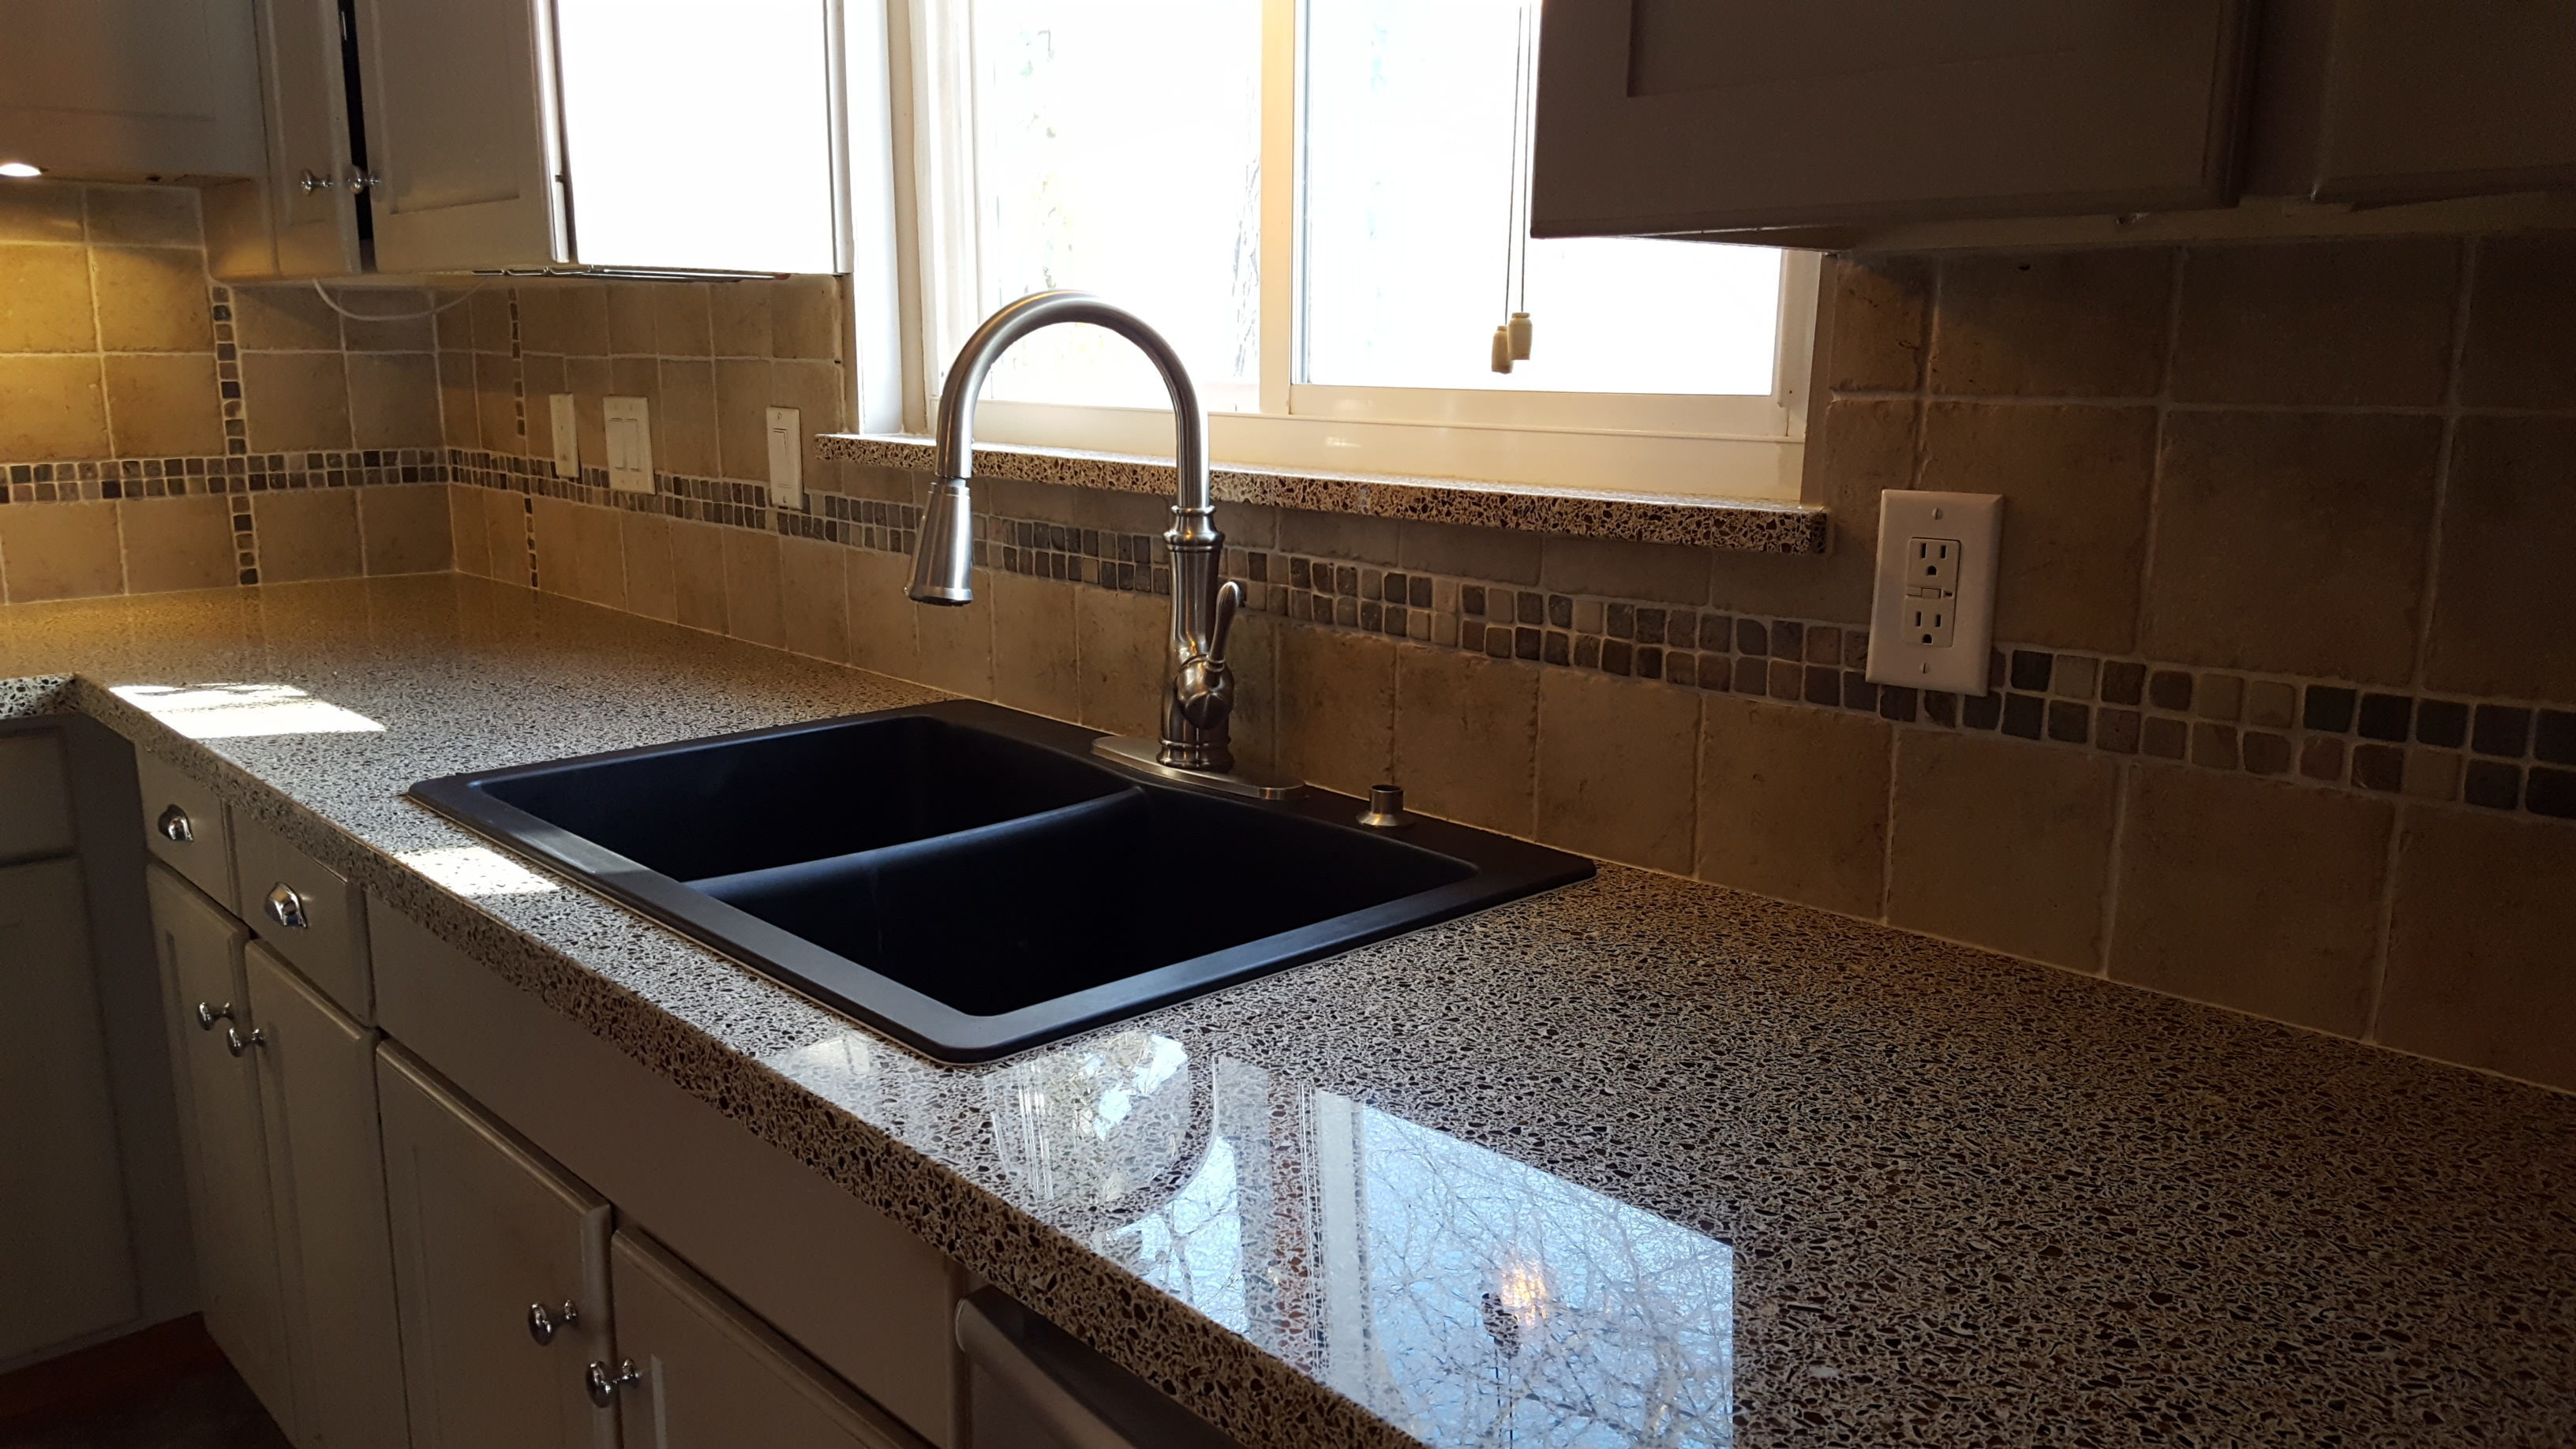 Granite Kitchen And Bath Tucson Top 1386 Reviews And Complaints About Granite Transformations